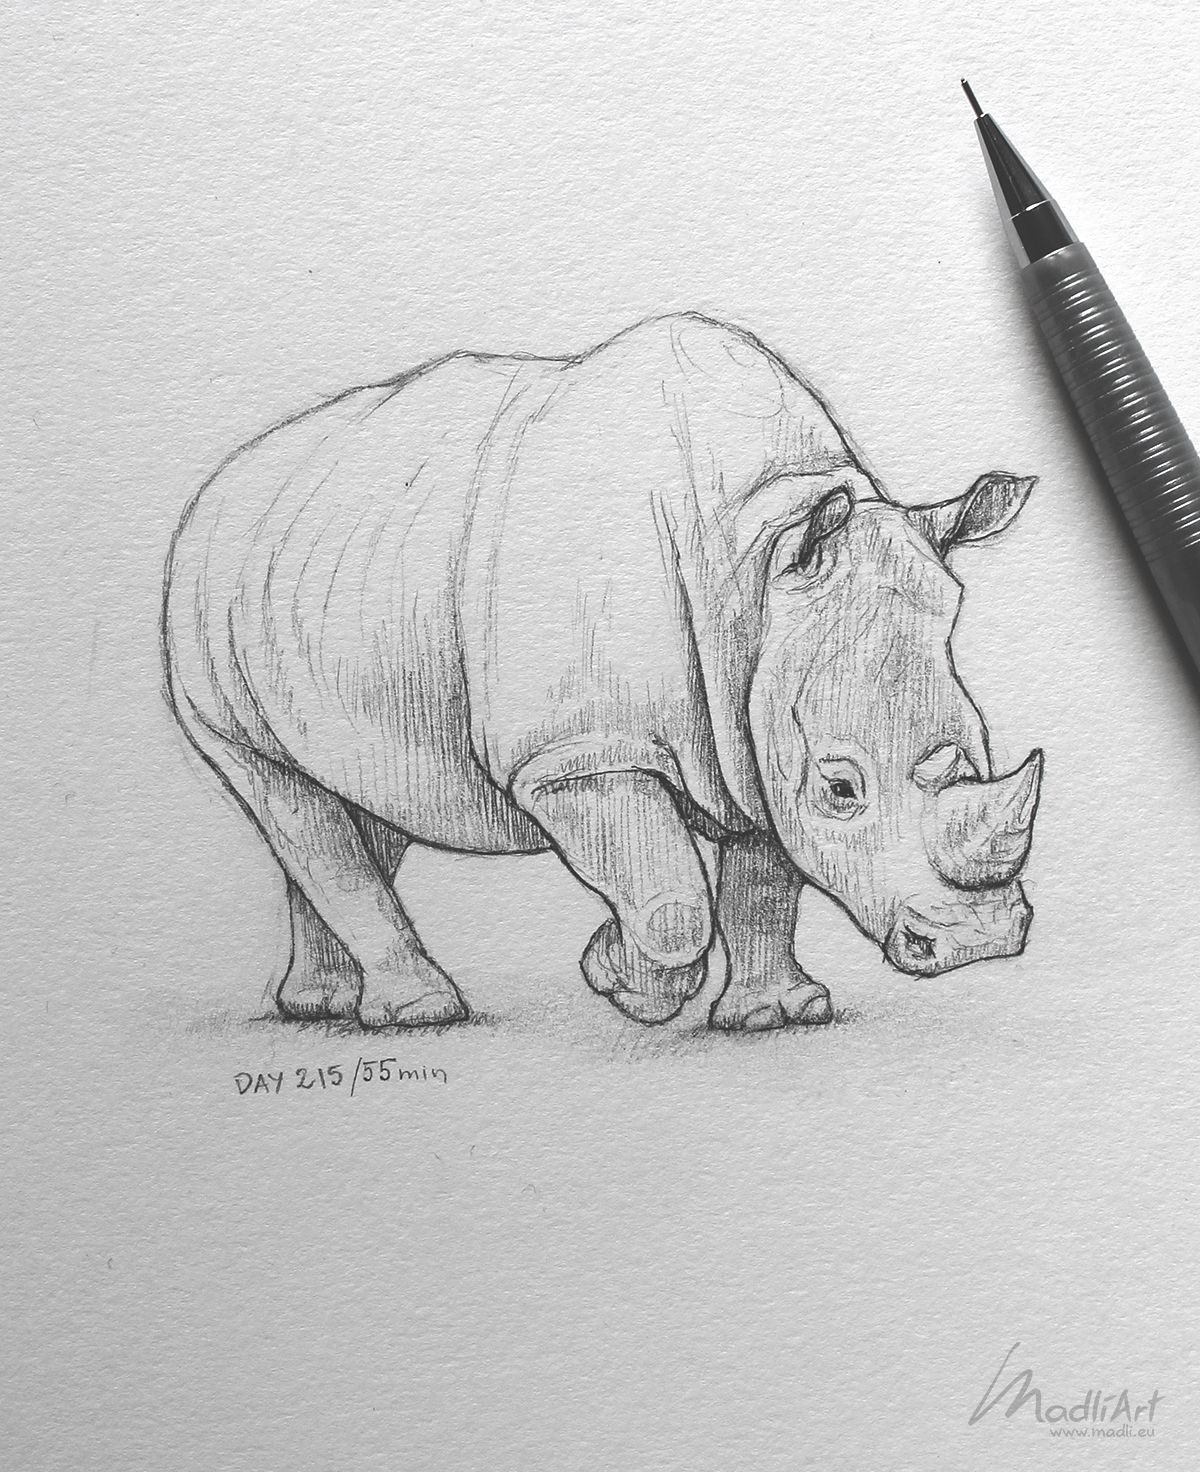 Endangered Animals Drawing : endangered, animals, drawing, Sketchbook, Pencil, Doodle, Endangered, Species, Animals, Wildlife, Drawing, Artwork, Ideas, Sketche…, Animal, Drawings, Sketches,, Rhino, Realistic